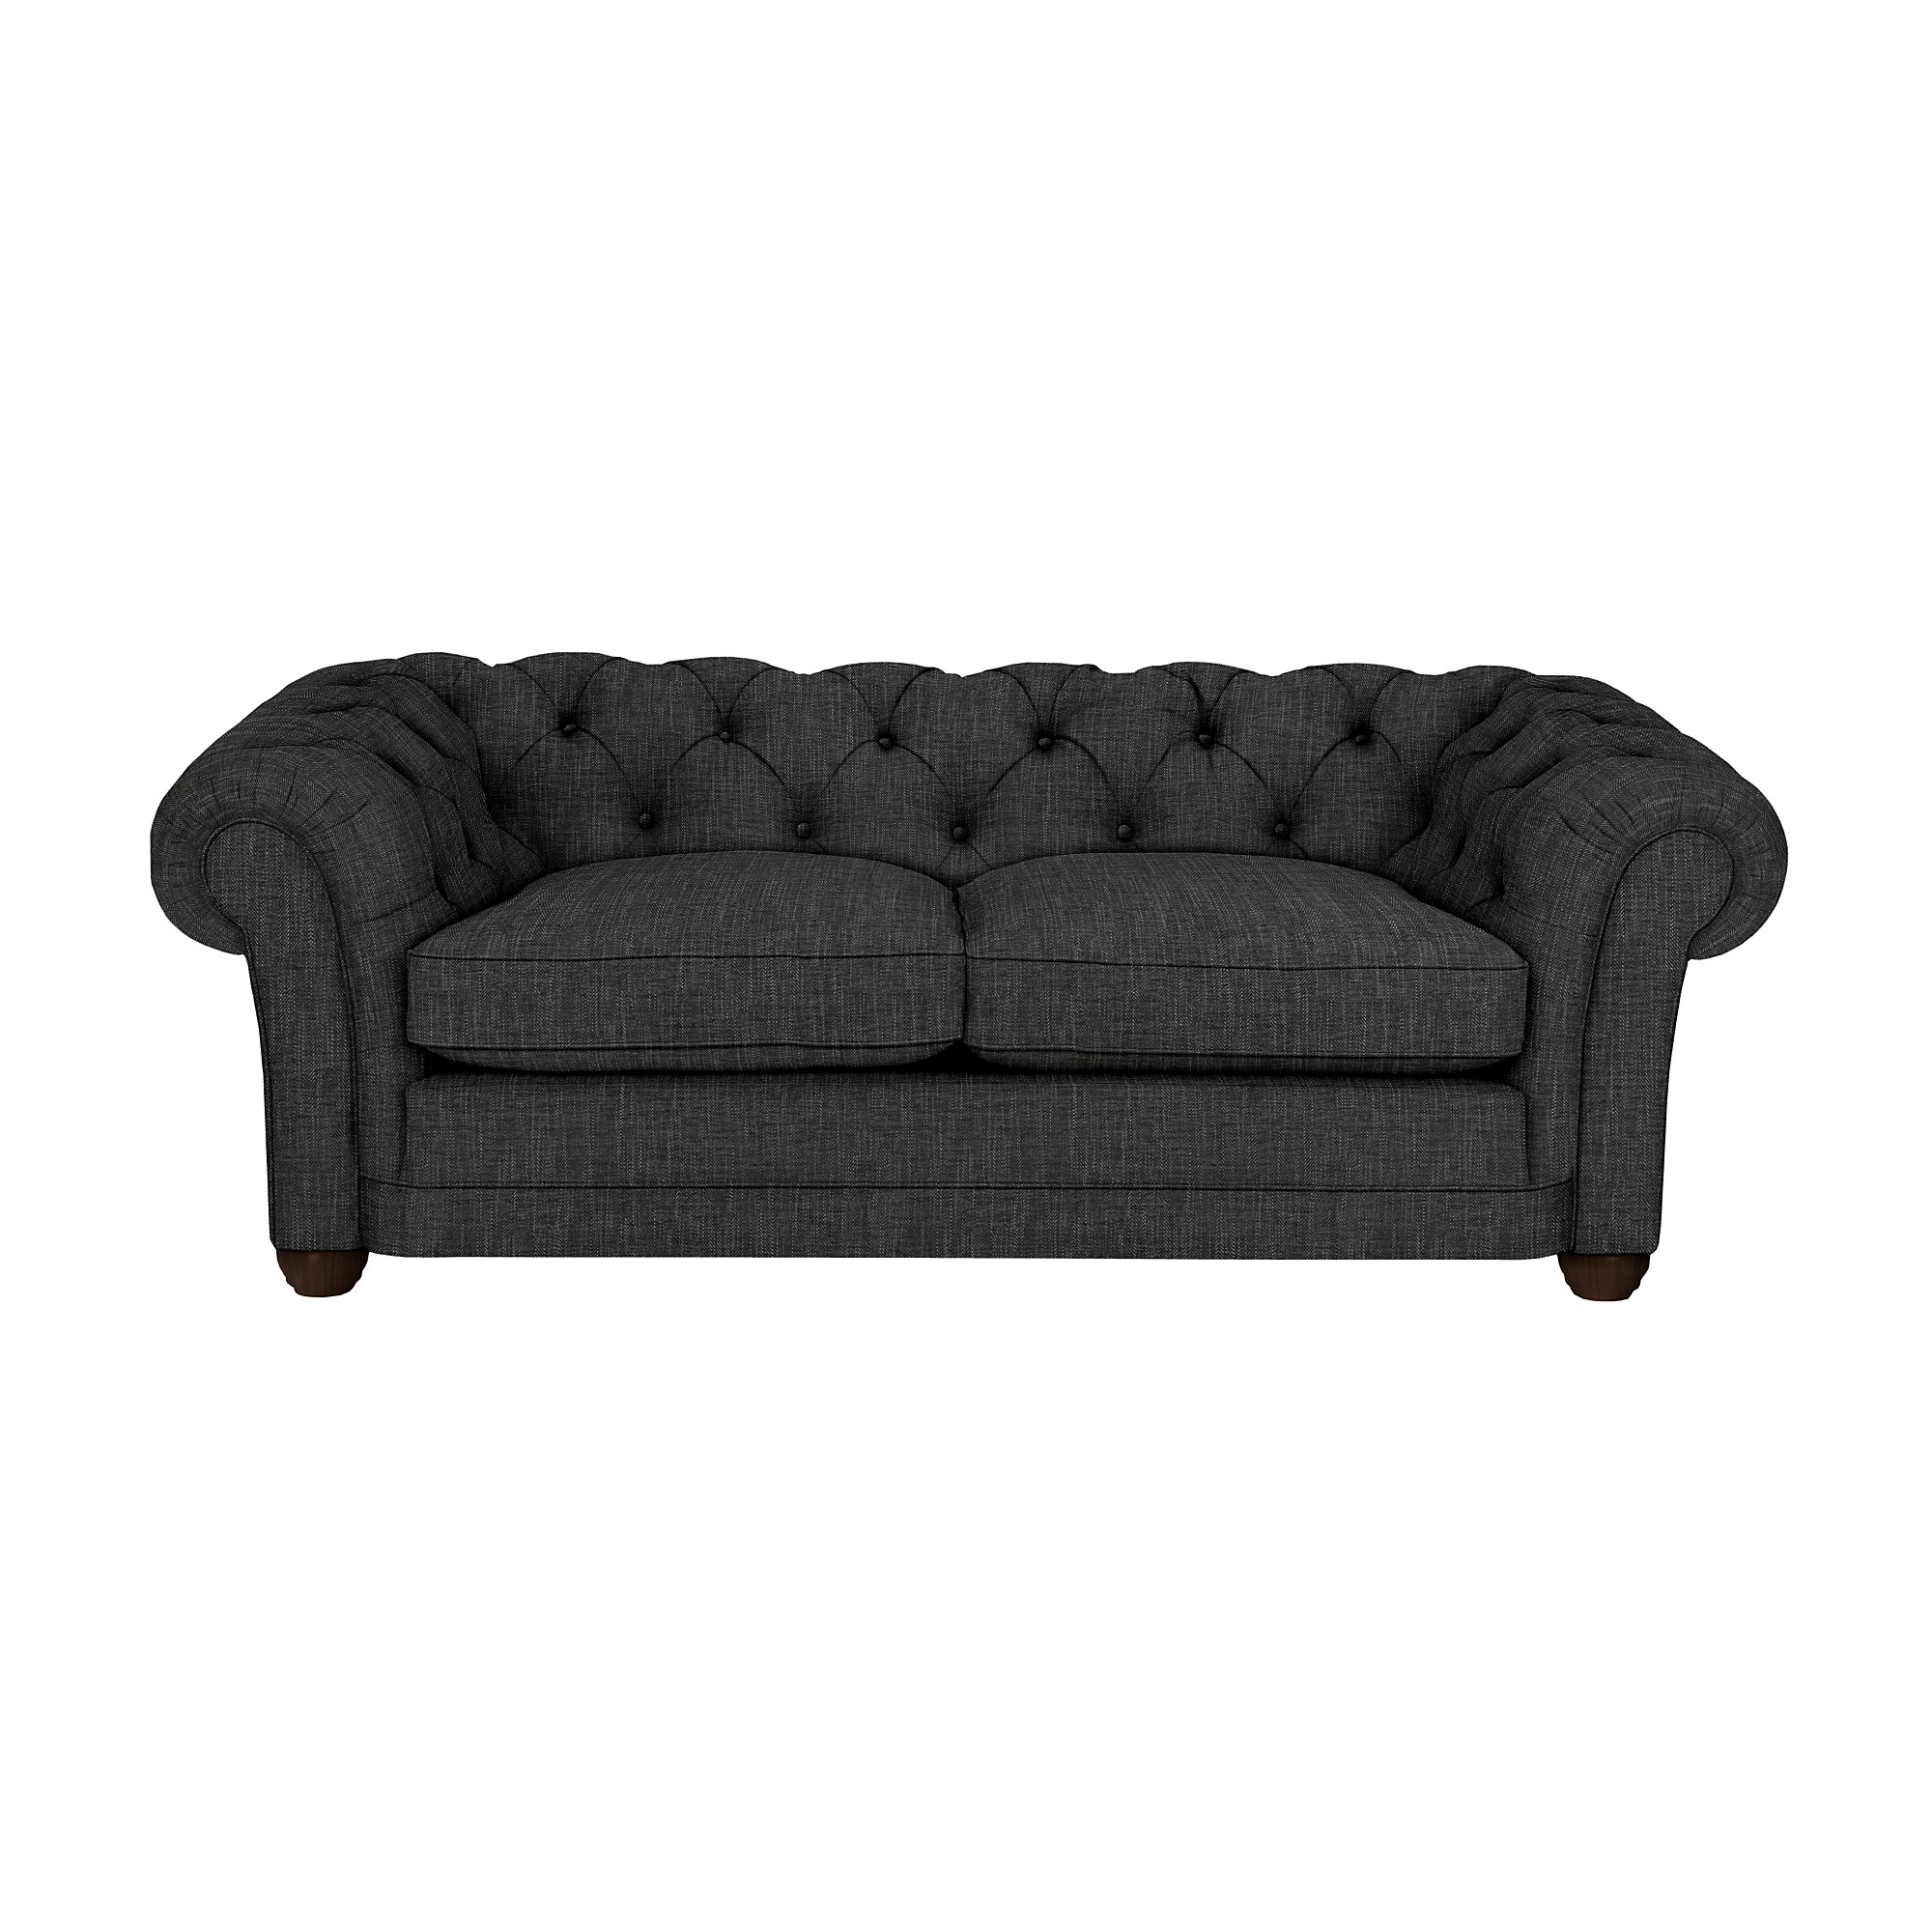 John Lewis Stanford Chesterfield Large Sofa